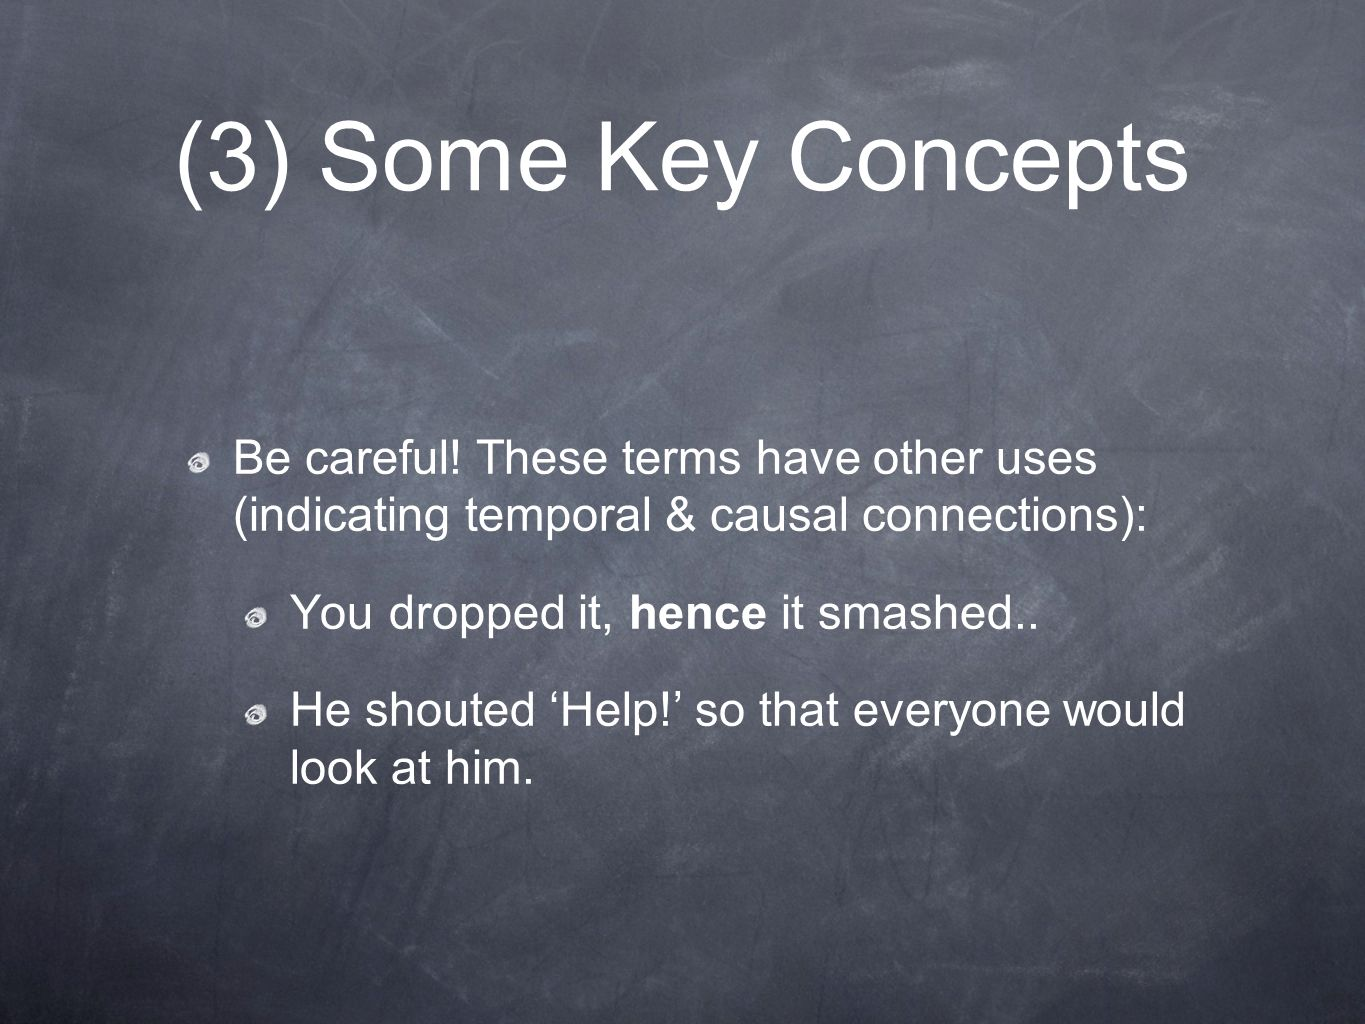 (3) Some Key Concepts Be careful! These terms have other uses (indicating temporal & causal connections):